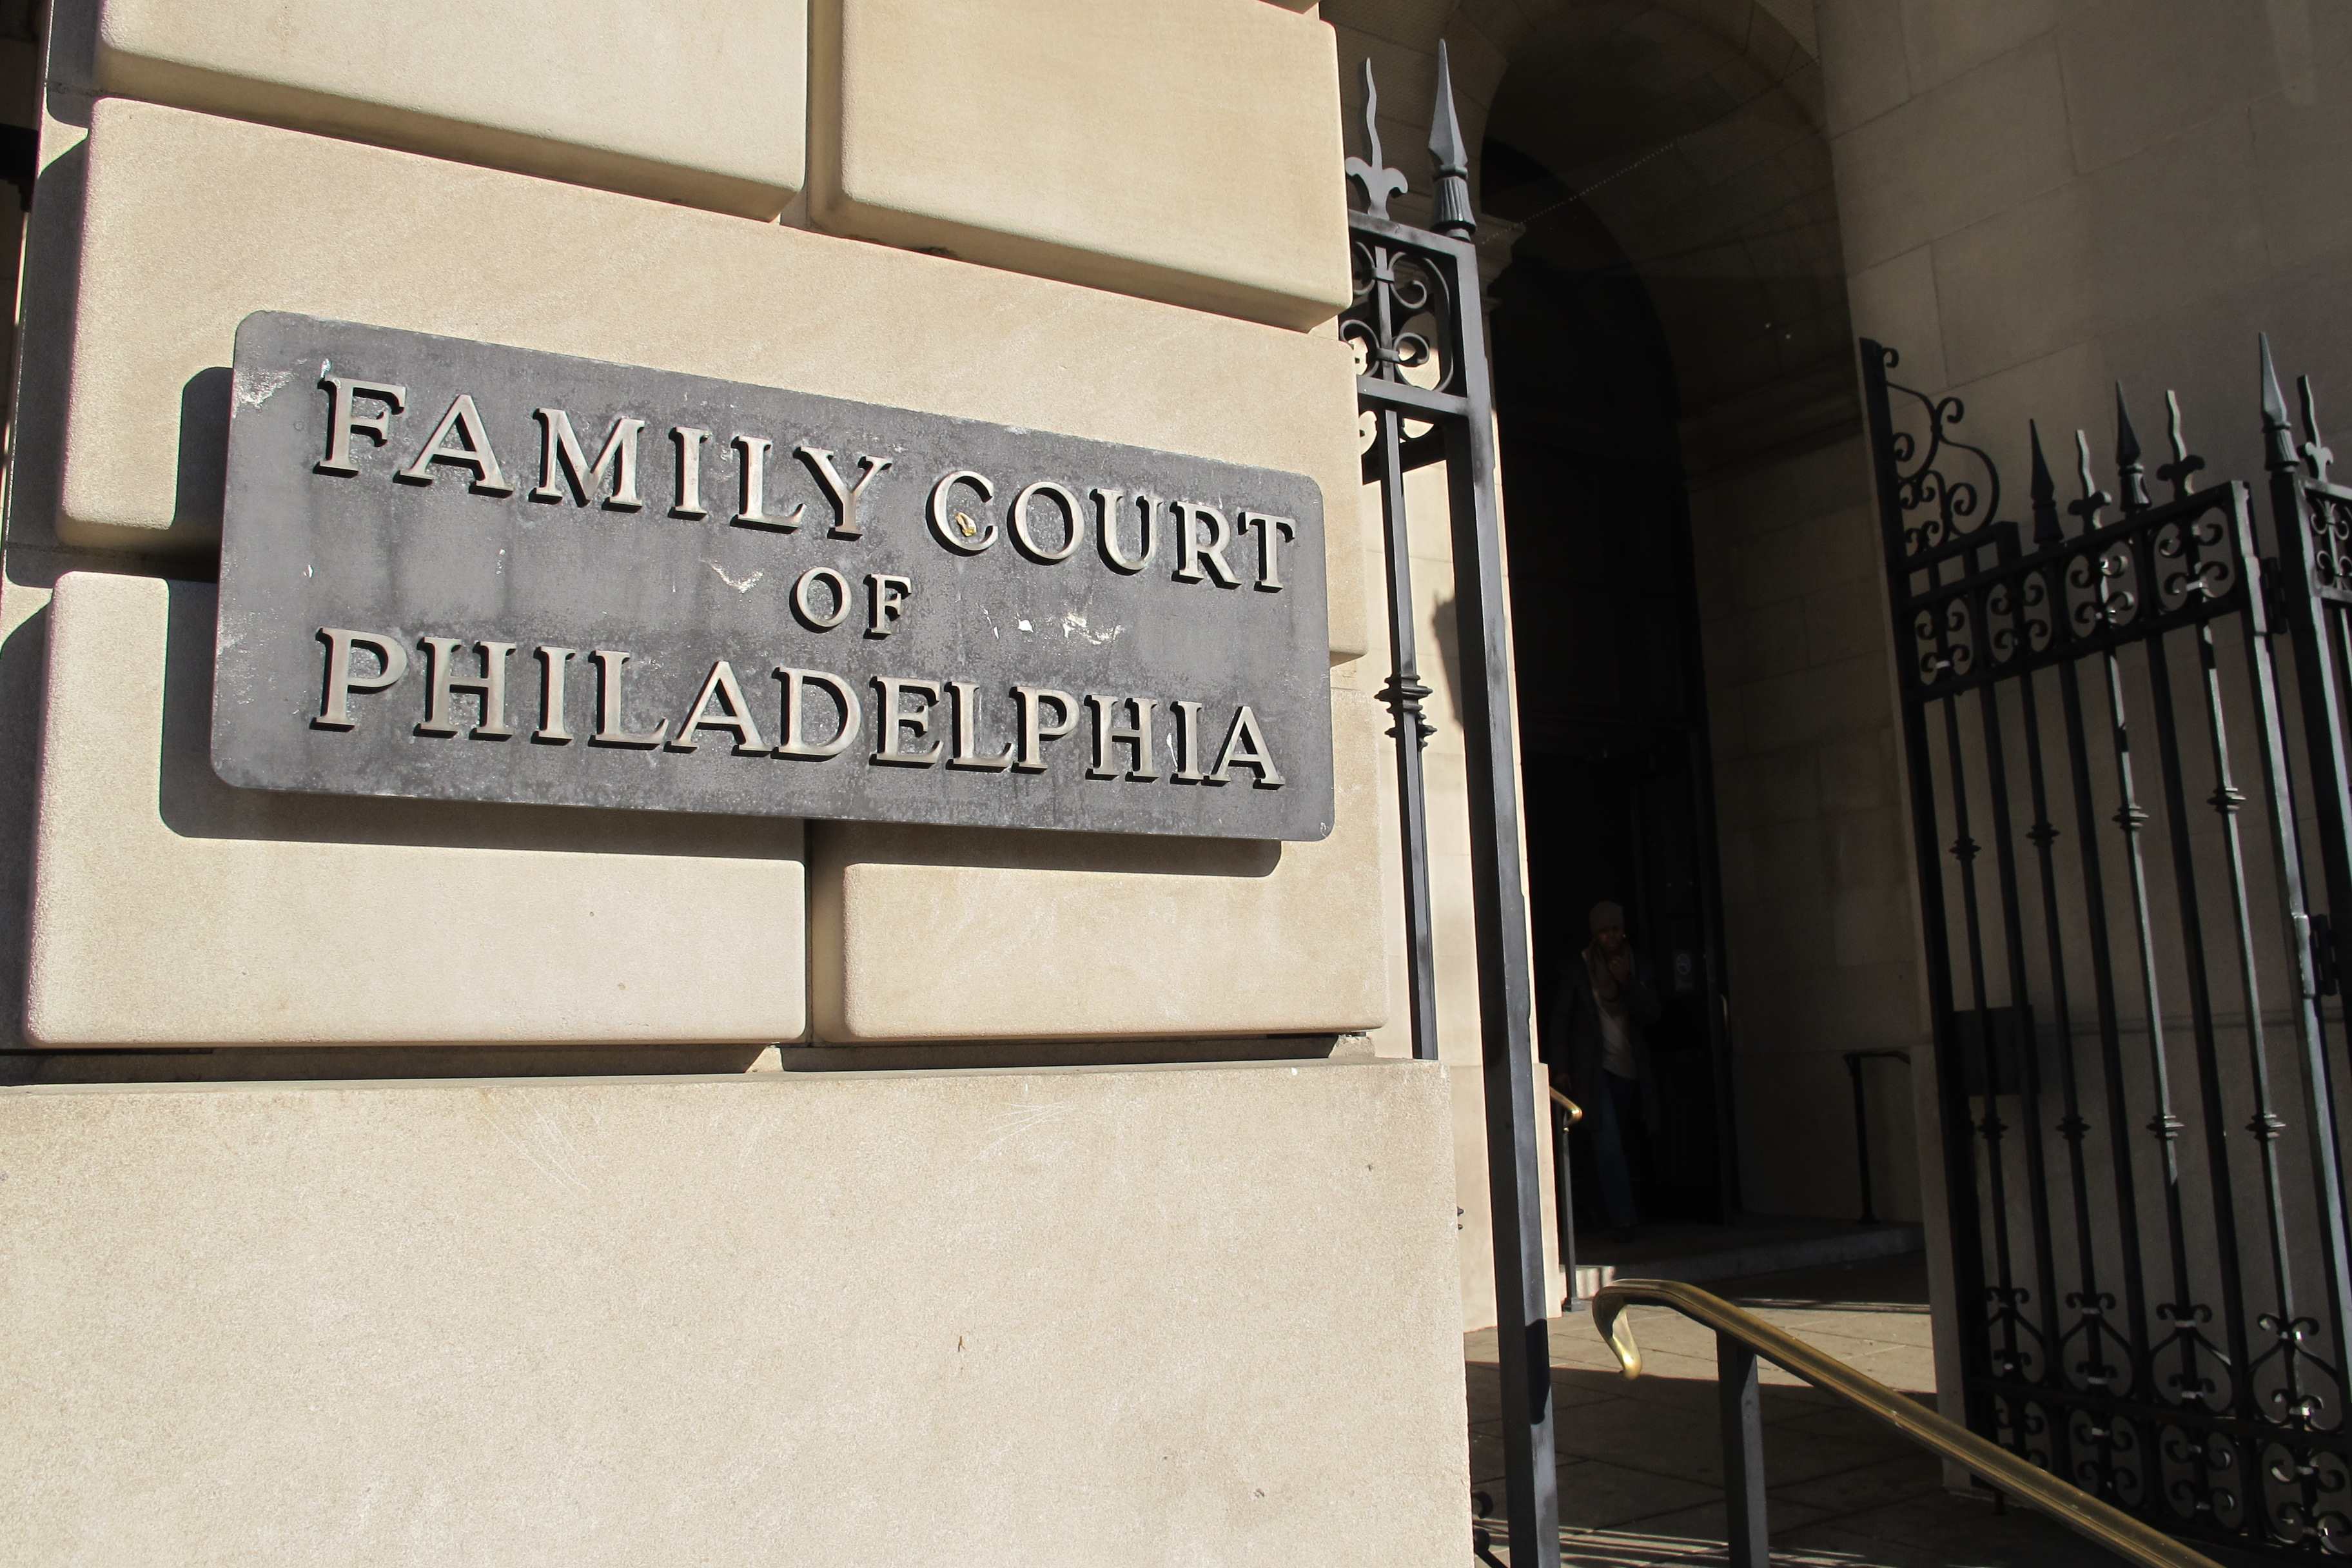 The Family Court of Philadelphia is moving to a new building under construction at 15th and Arch streets.